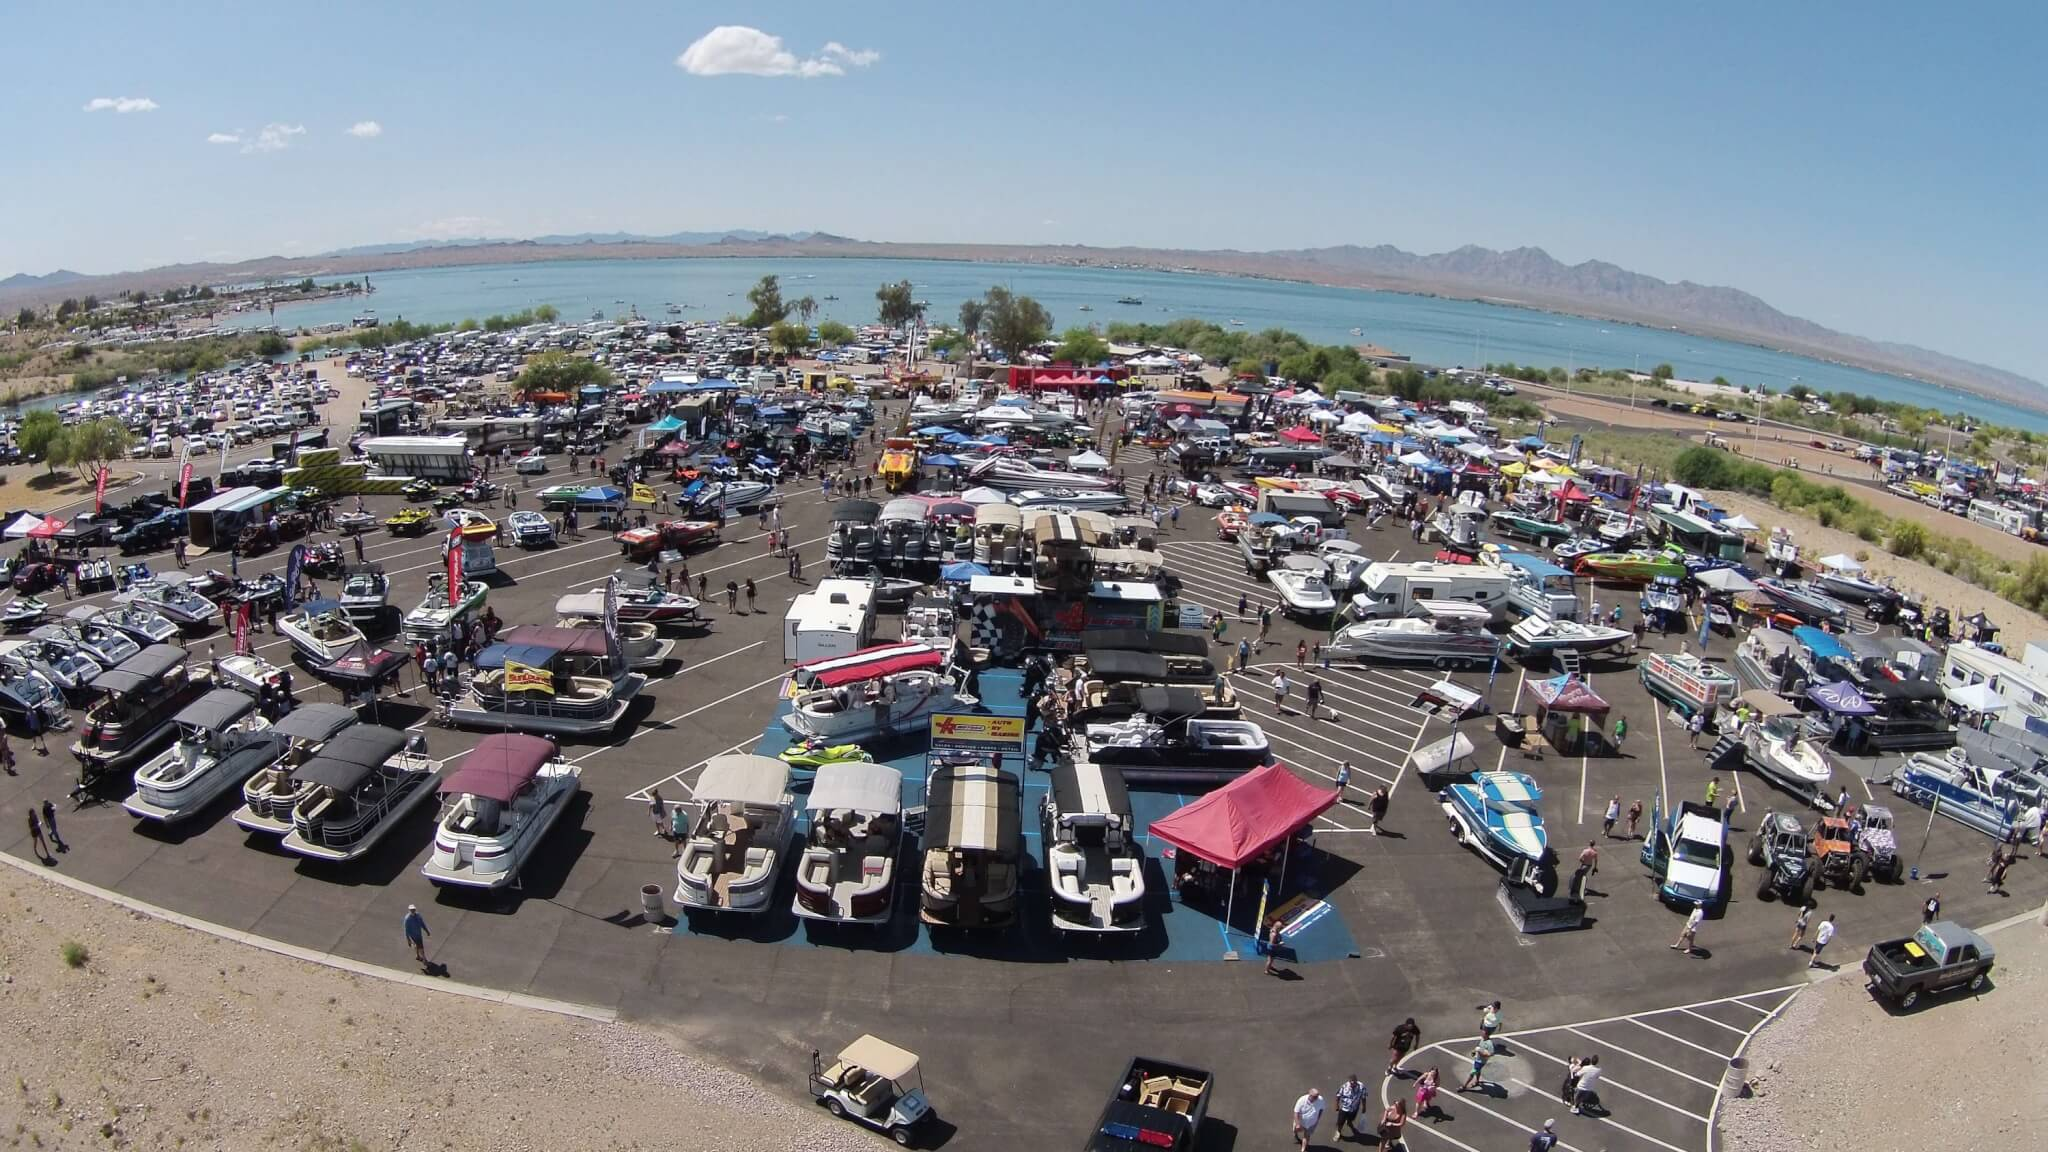 Lake Havasu Sand, Water & RV Expo